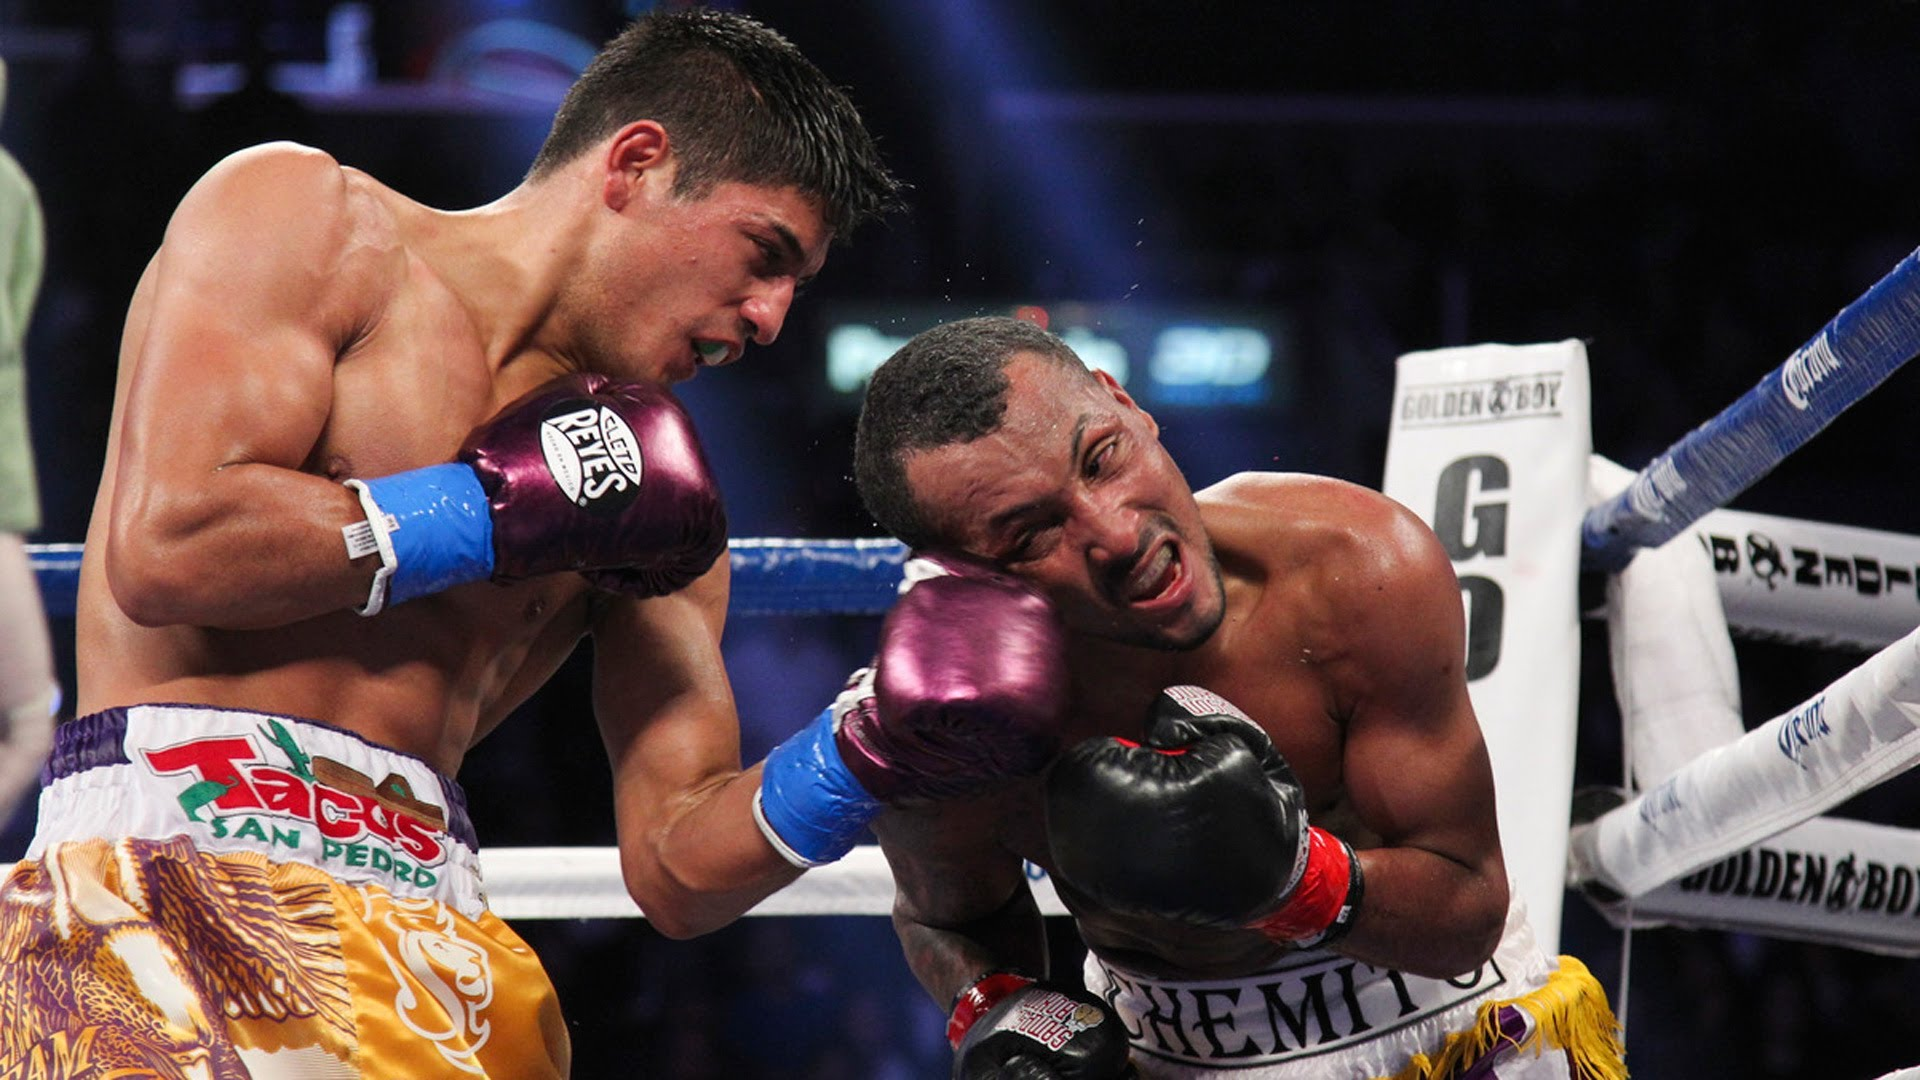 Abner Mares lands a left hand on Anselmo Moreno. Photo: Showtime Sports